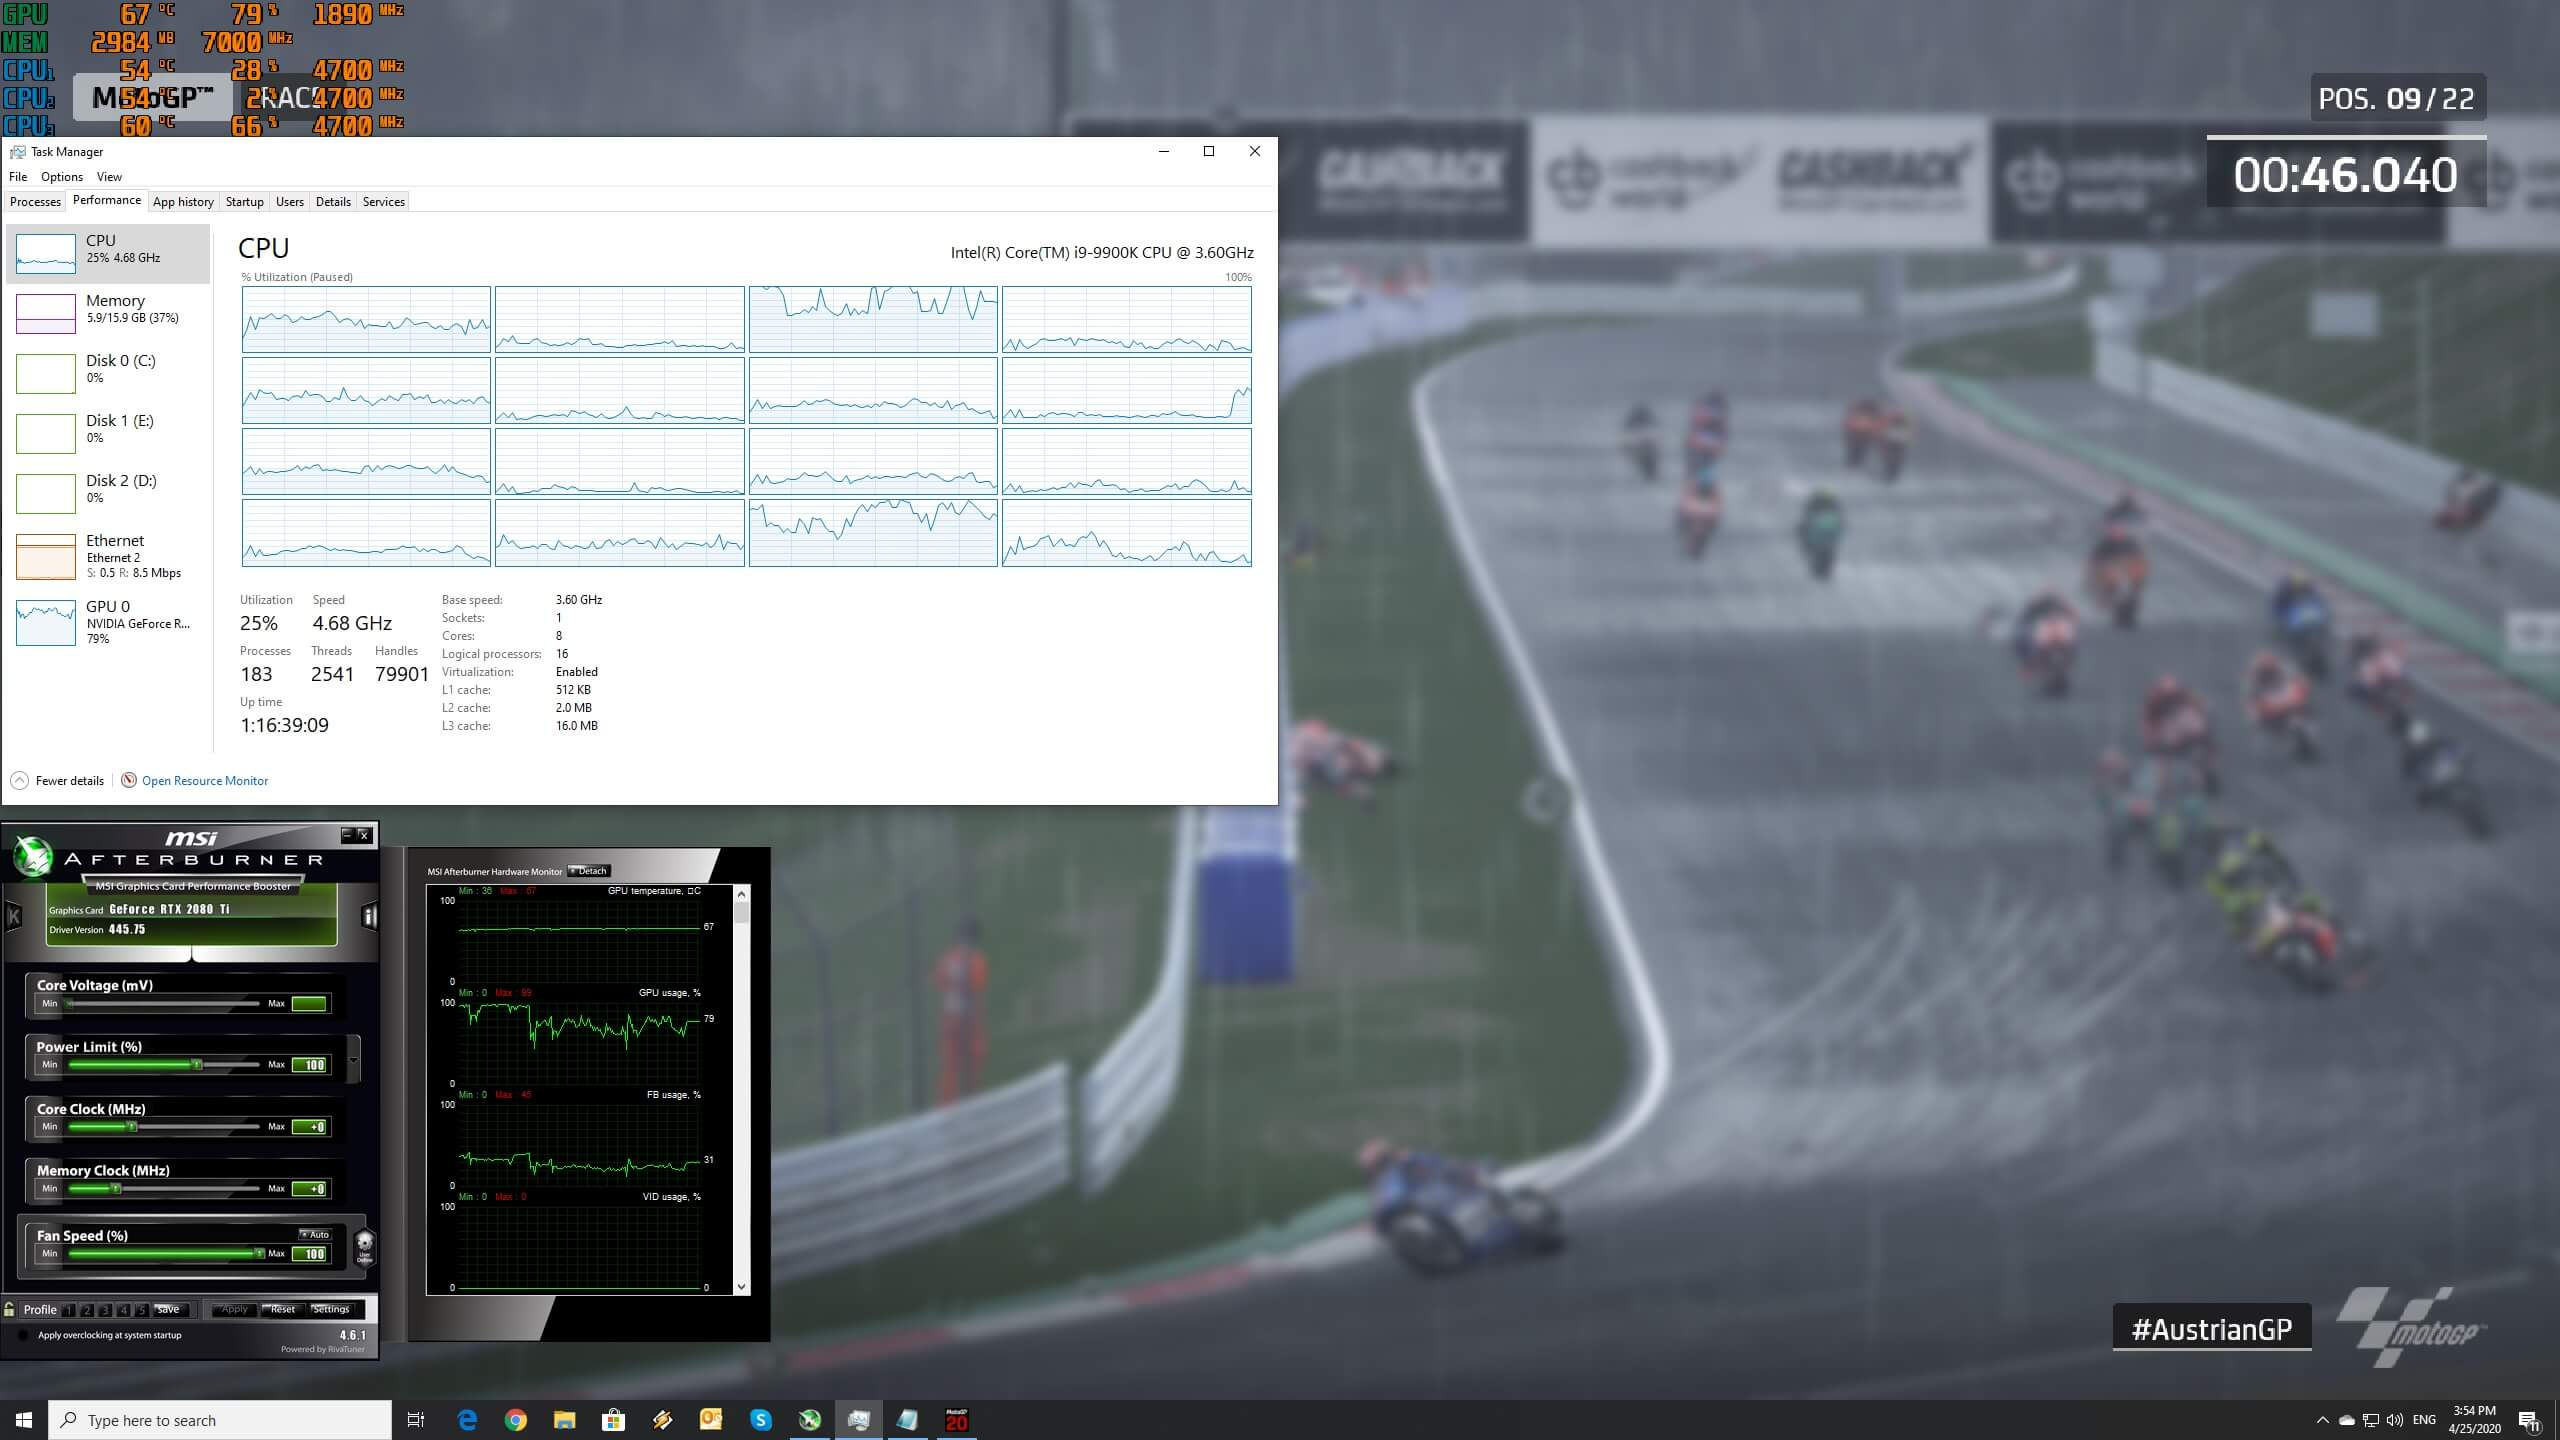 Motogp 20 Pc Performance Analysis